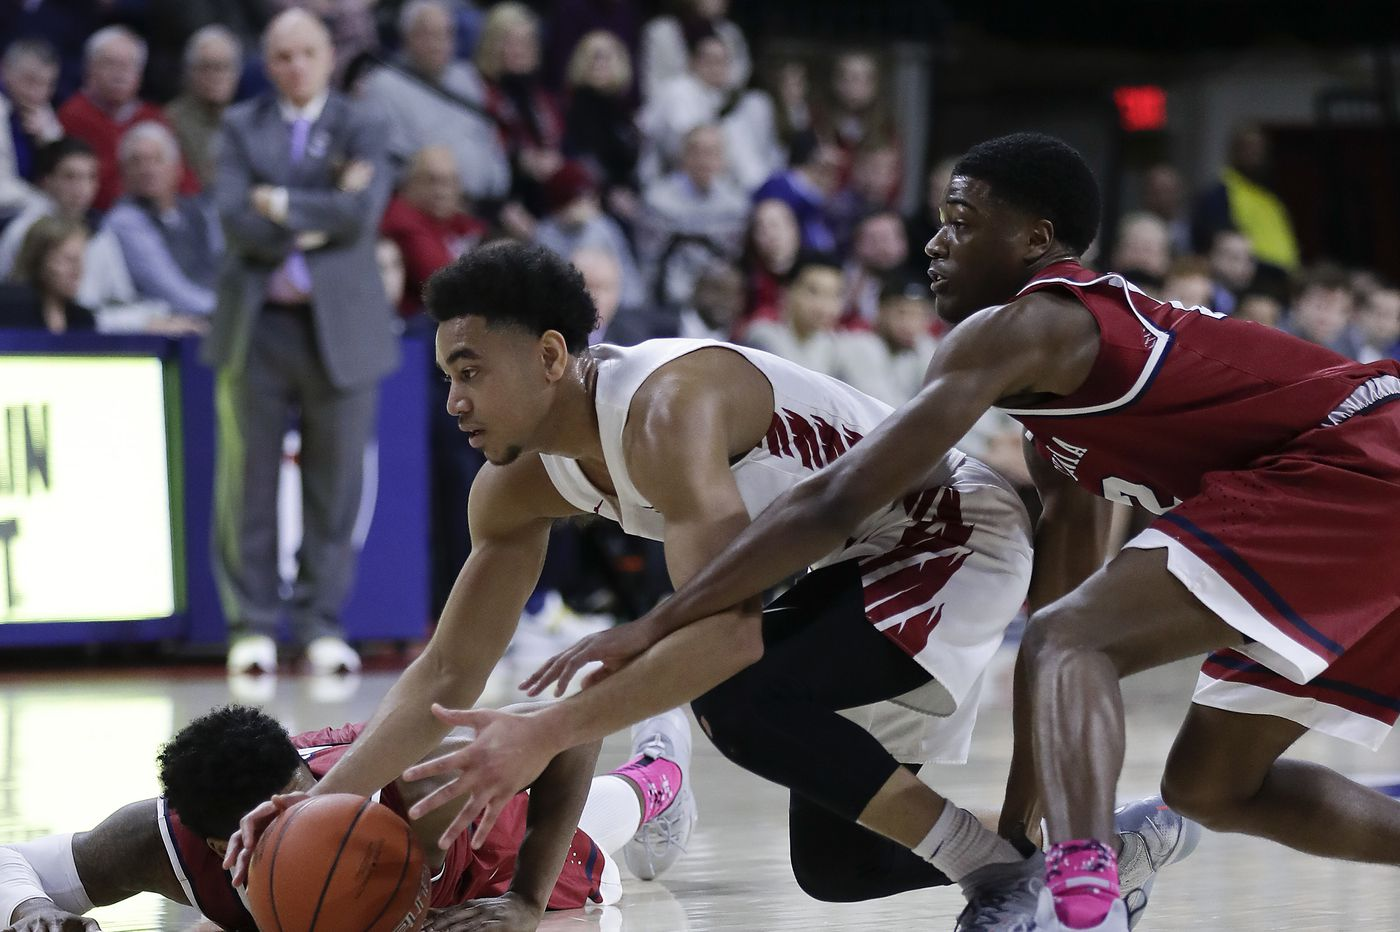 St. Joseph's guard Jared Bynum says he will enter transfer ...